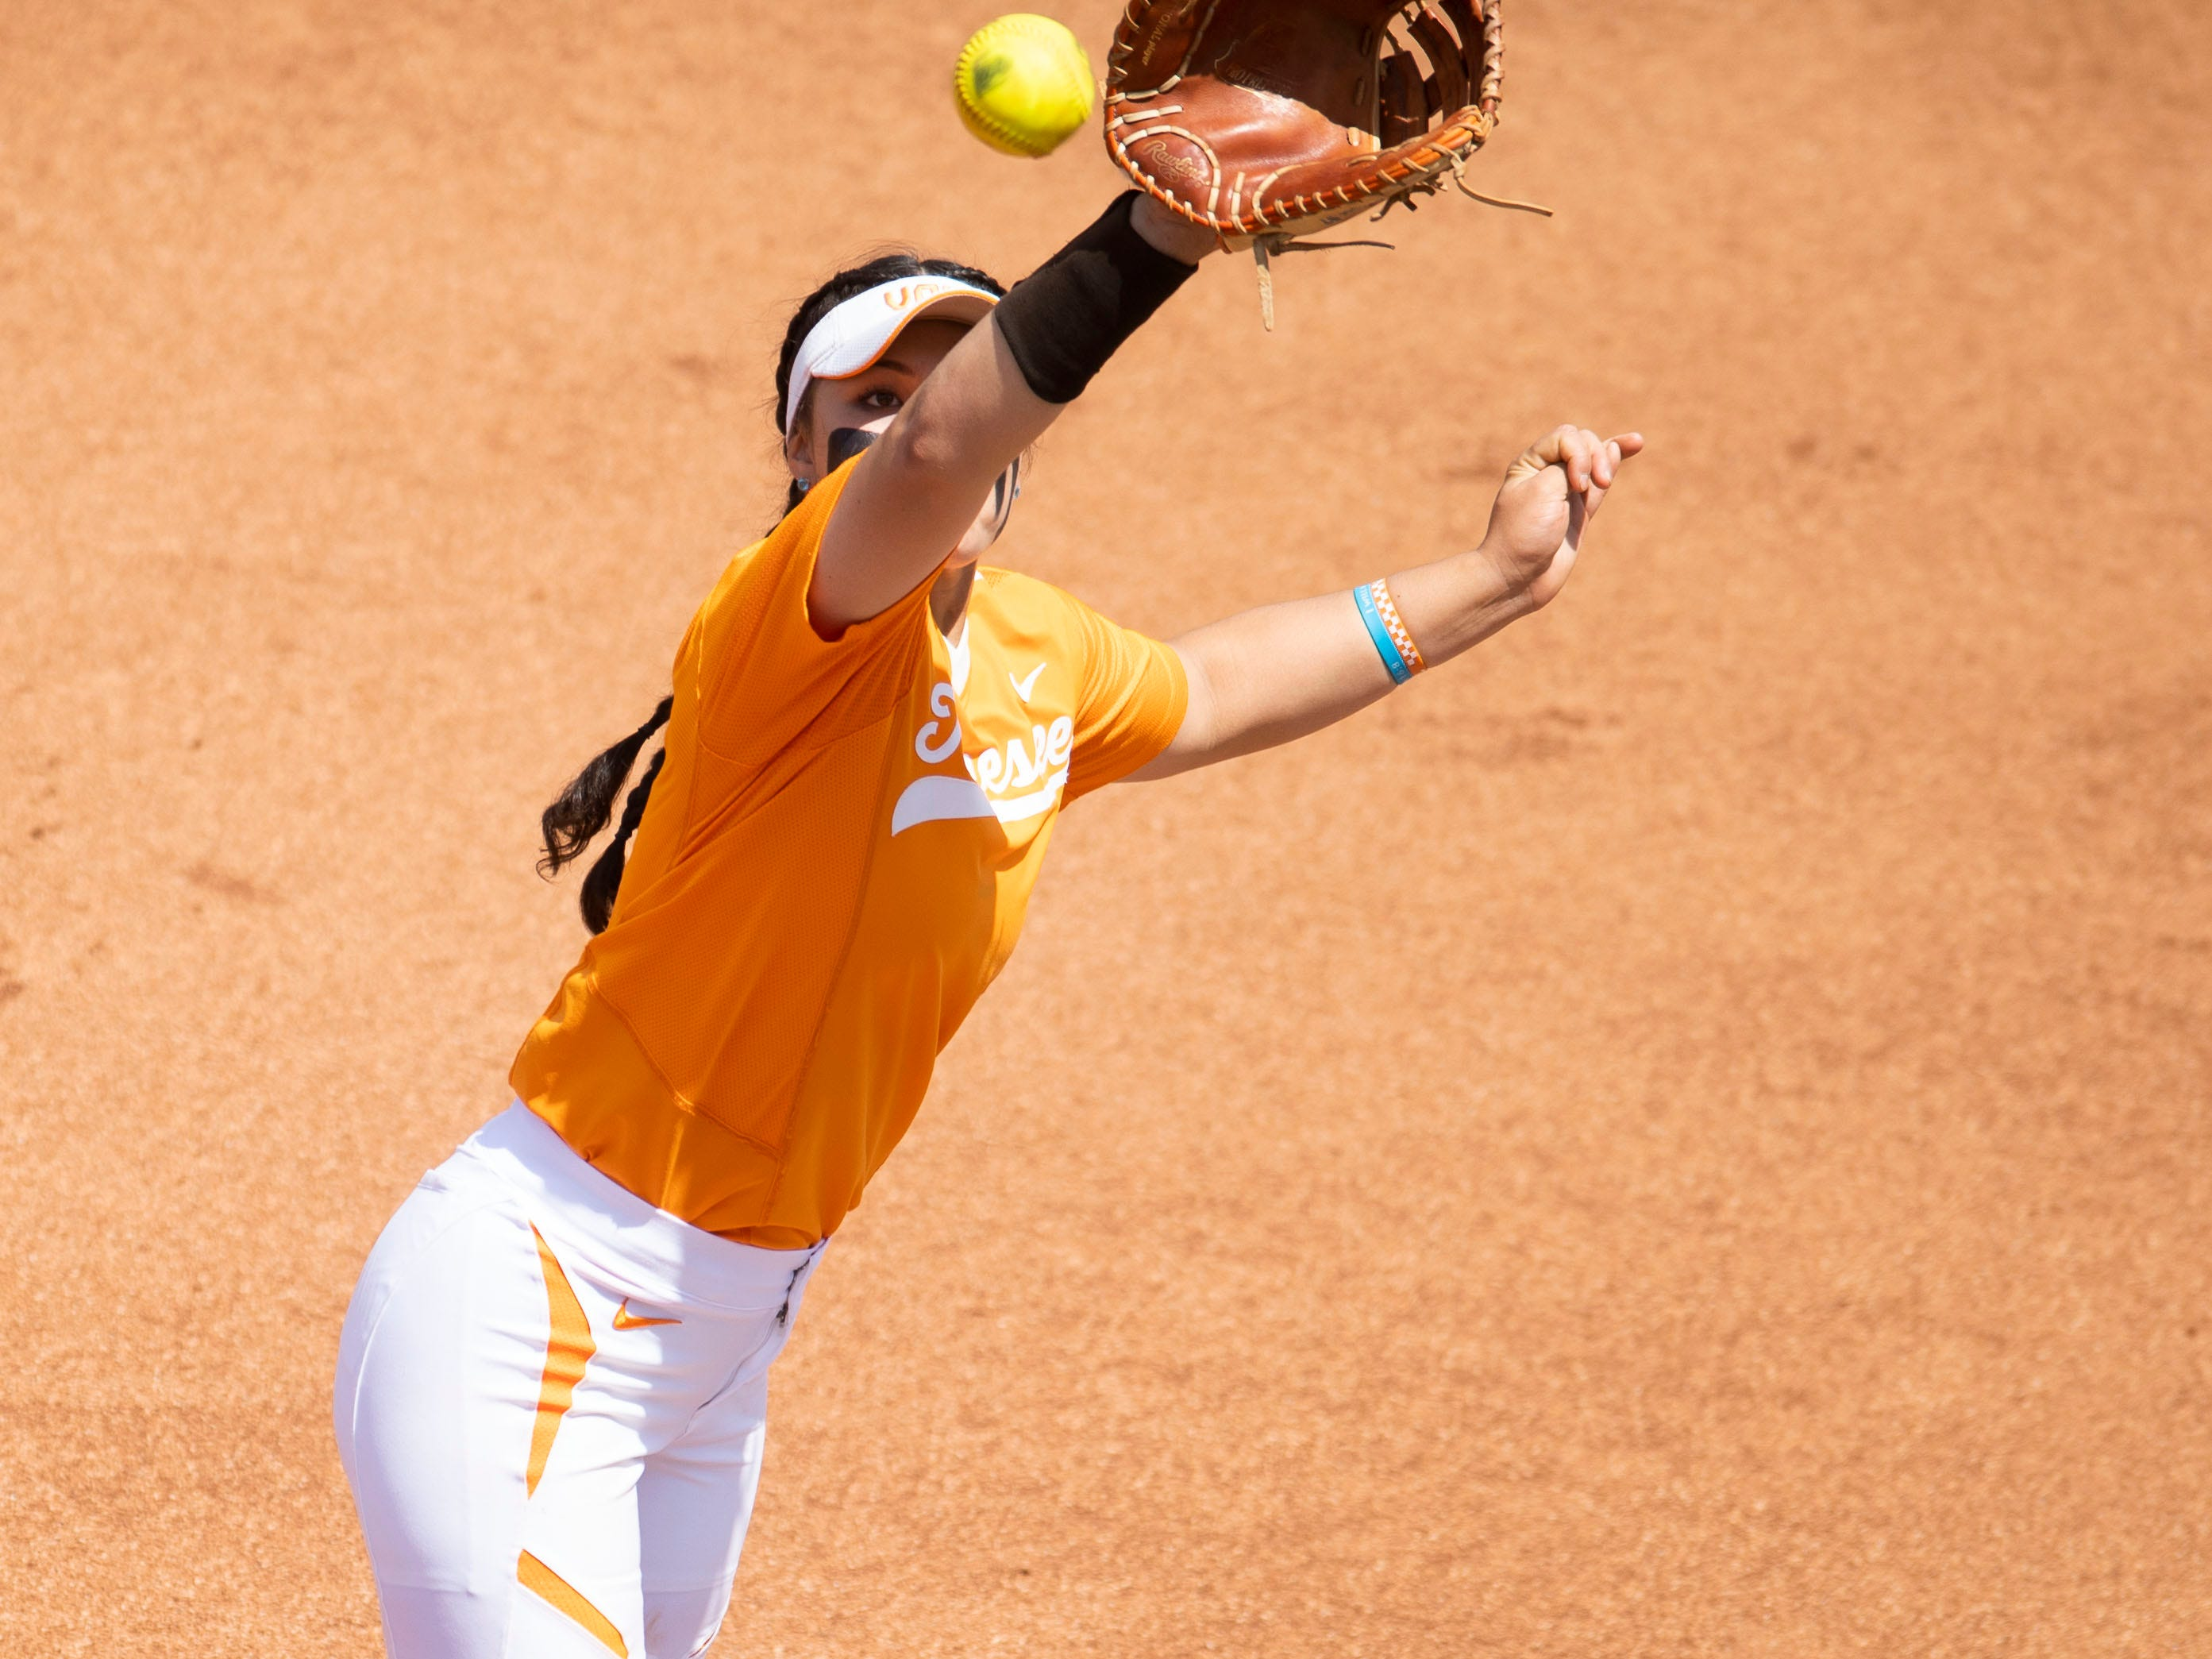 Tennessee's Ashley Morgan (7) naps the line drive for an out in the third game of the series against Mississippi State at Sherri Parker Lee Stadium on Sunday, April 14, 2019.